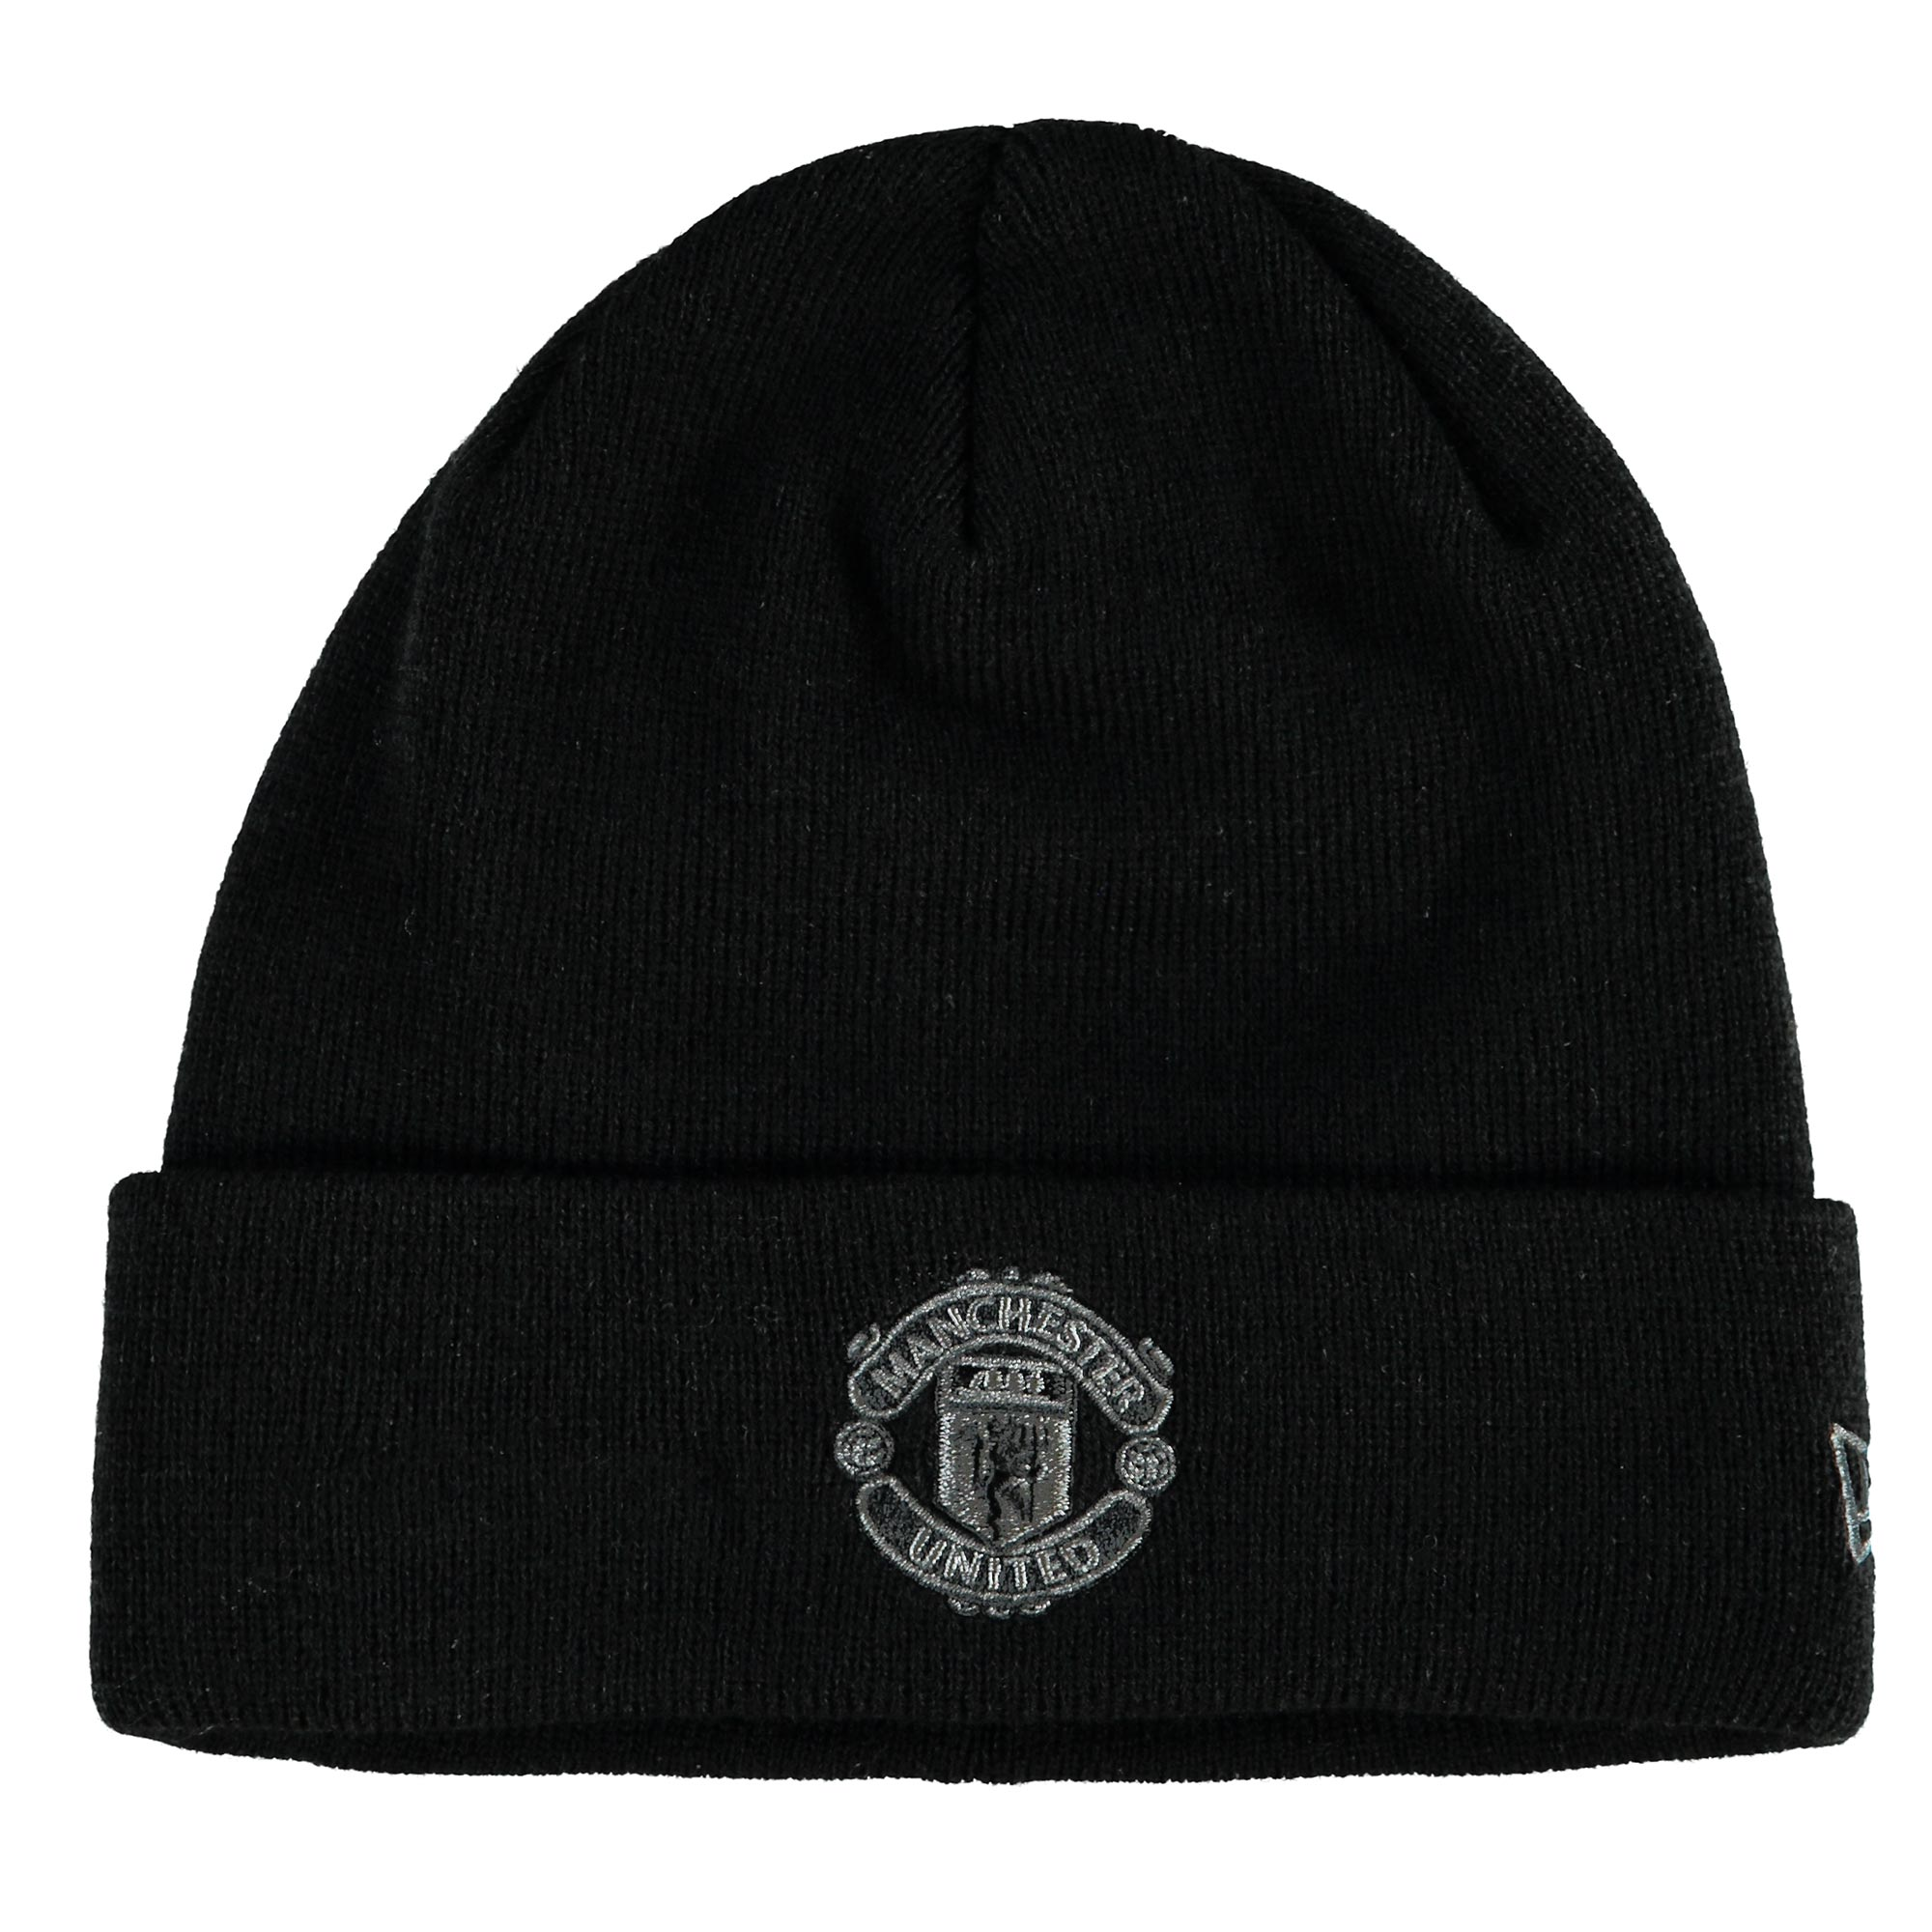 Manchester United New Era Tonal Crest Knit Hat - Black - Adult